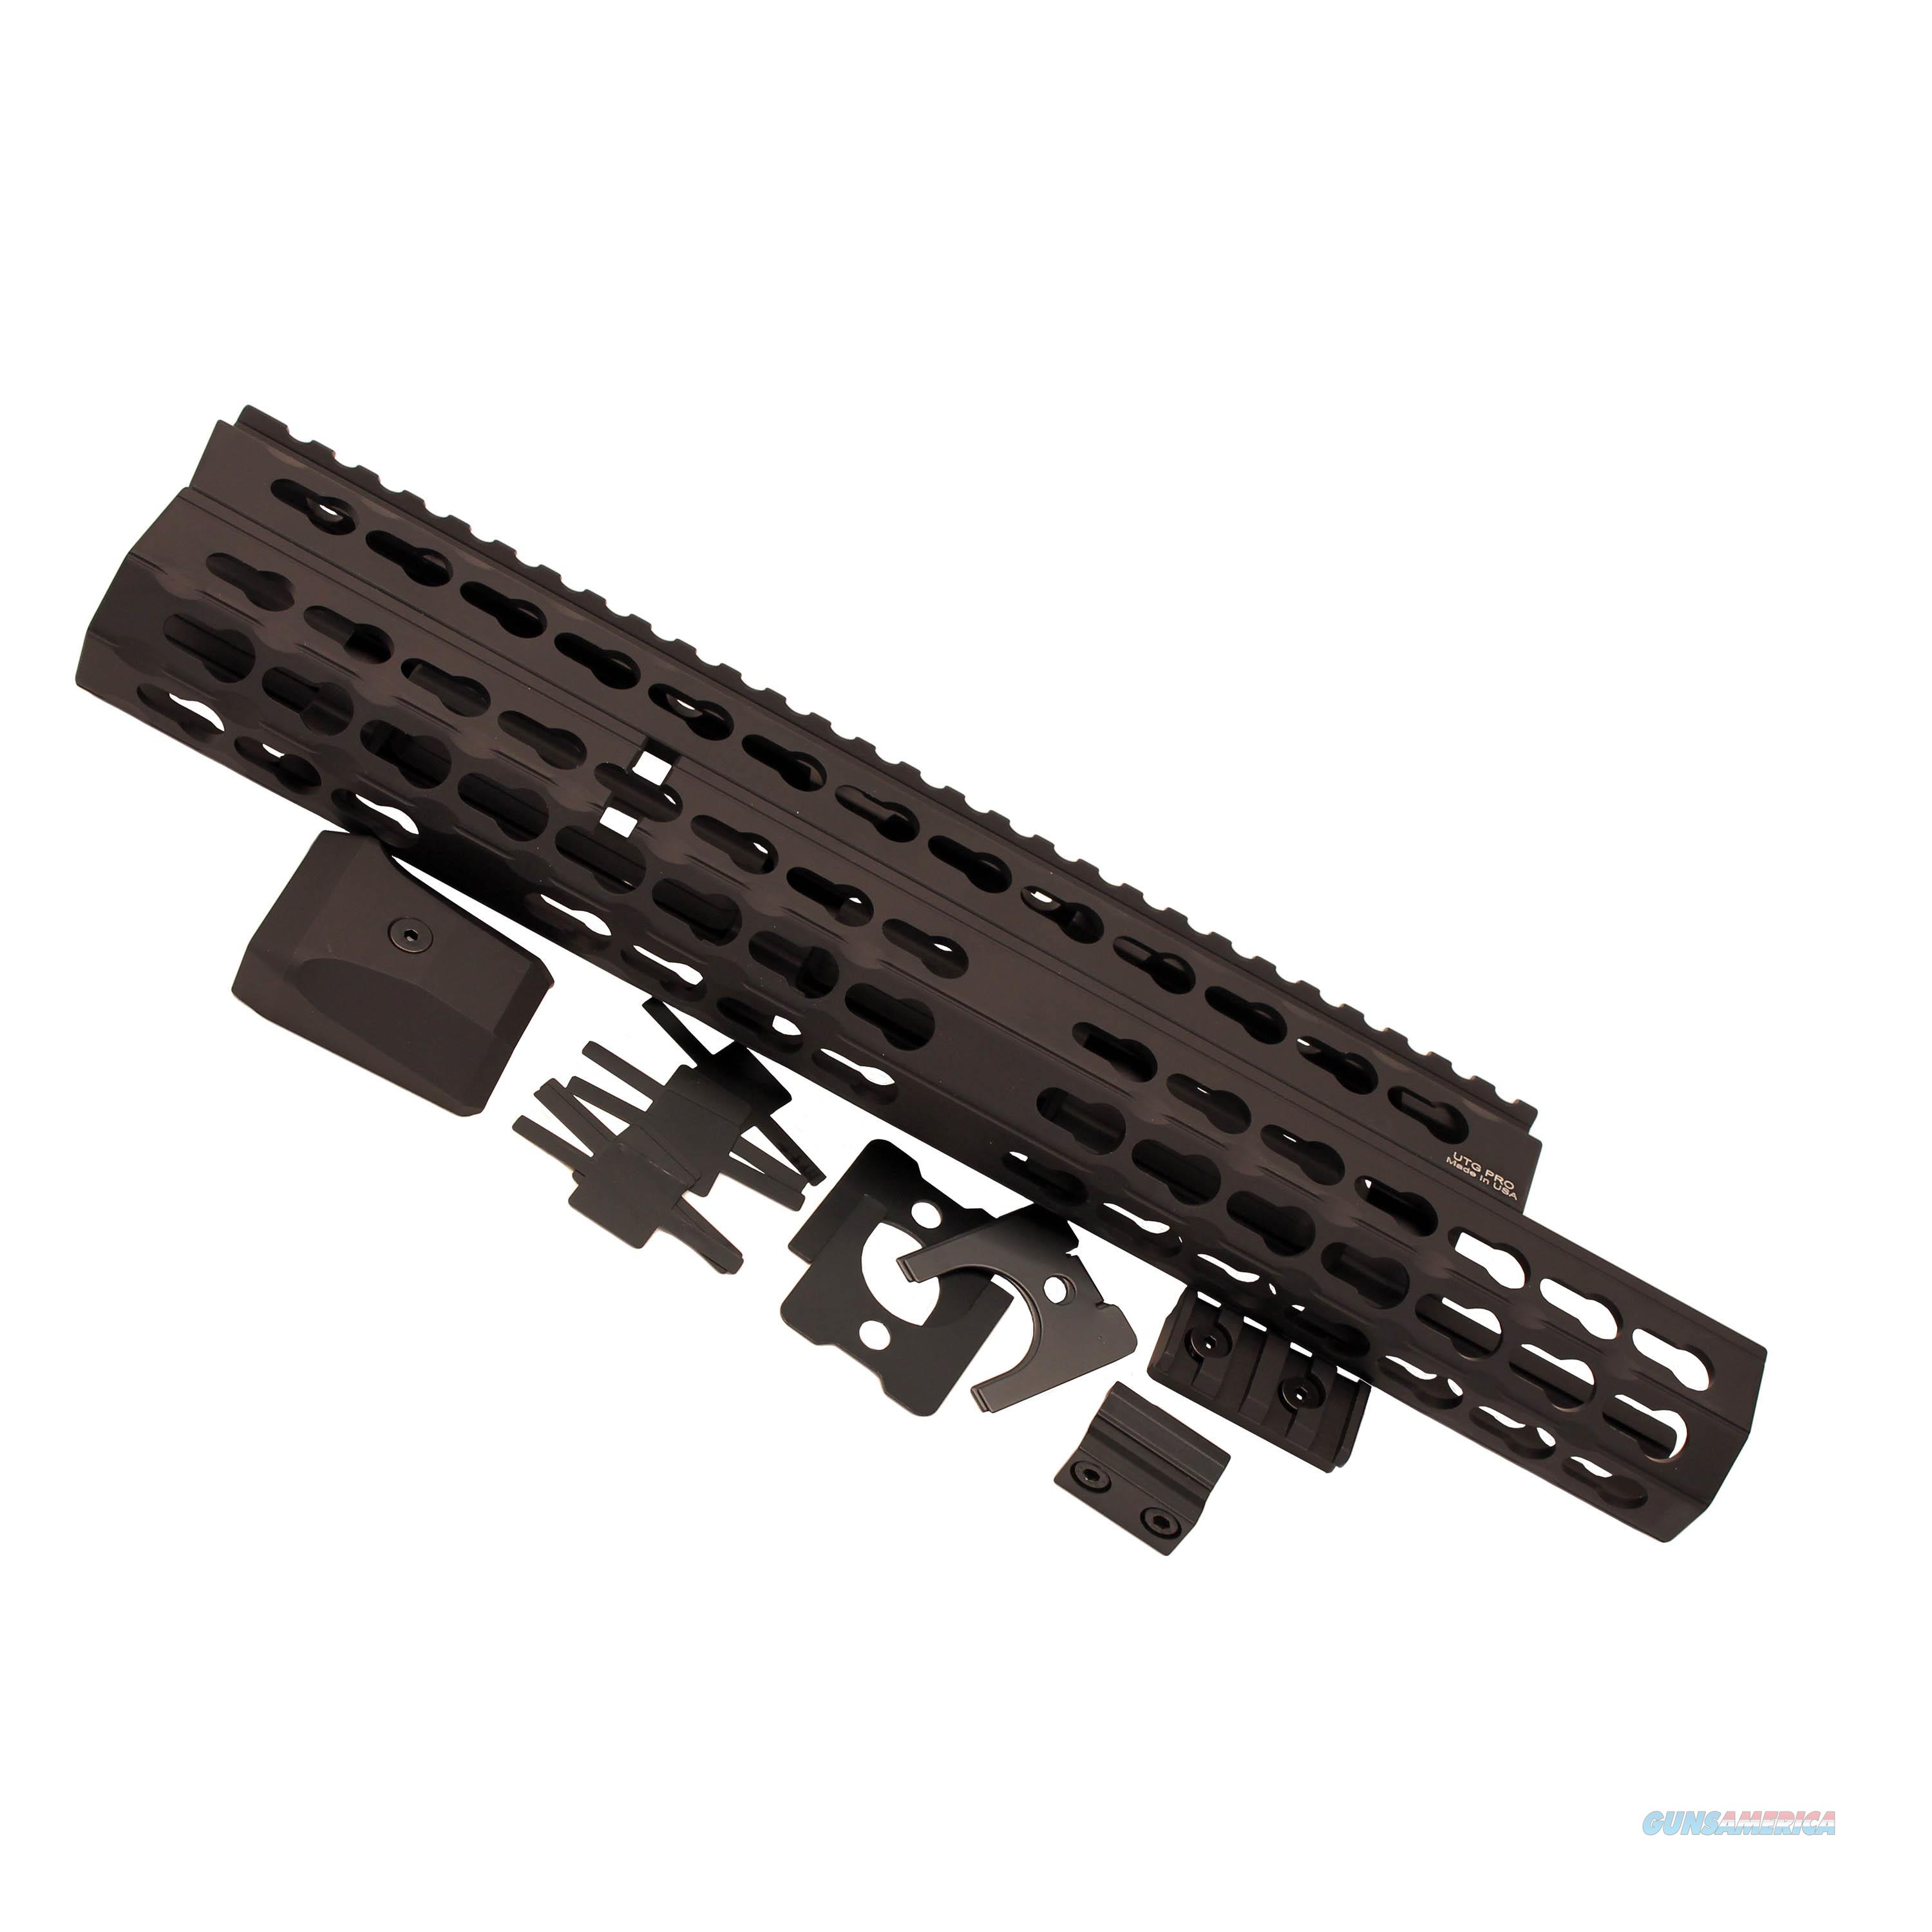 "Utg Us Made Chinese Ak47 13"" Keymod Rail MTU027SSKC  Non-Guns > Gun Parts > Tactical Rails (Non-AR)"